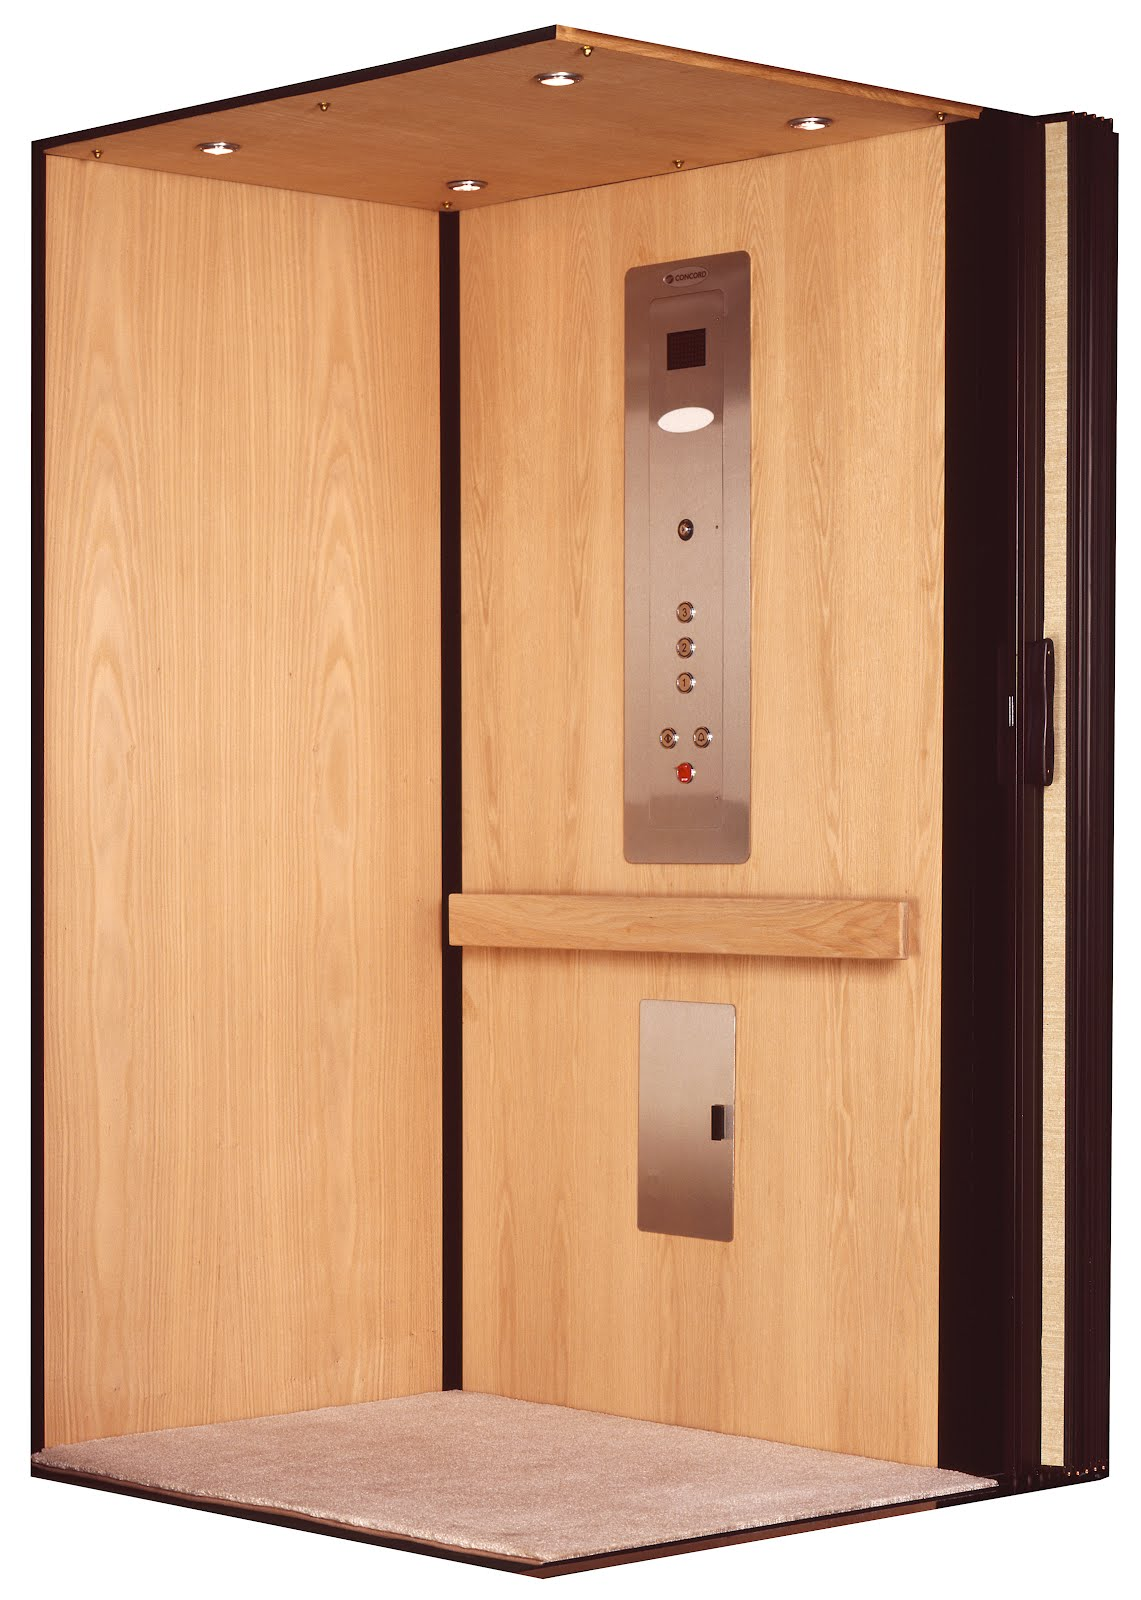 residential elevators home residential elevators company residential